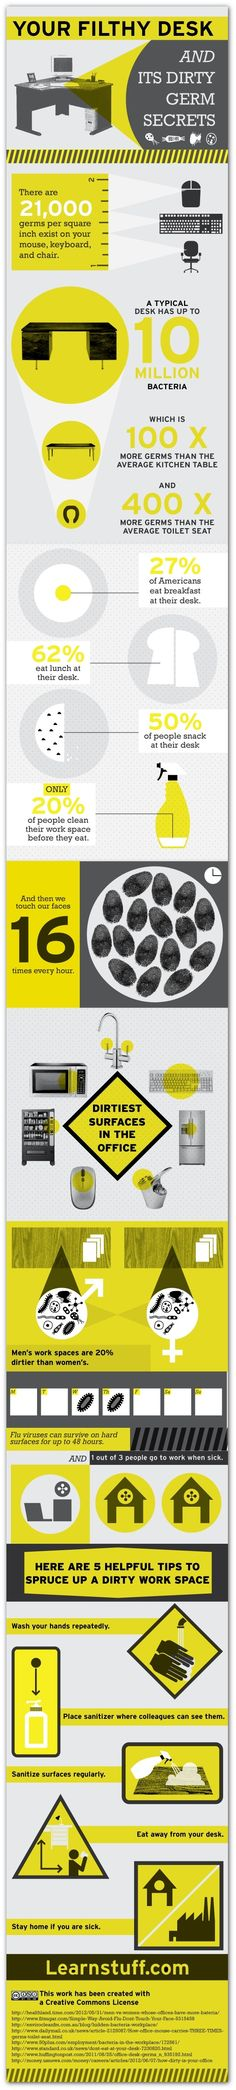 Eww! Is your filthy desk making you sick? [infographic]